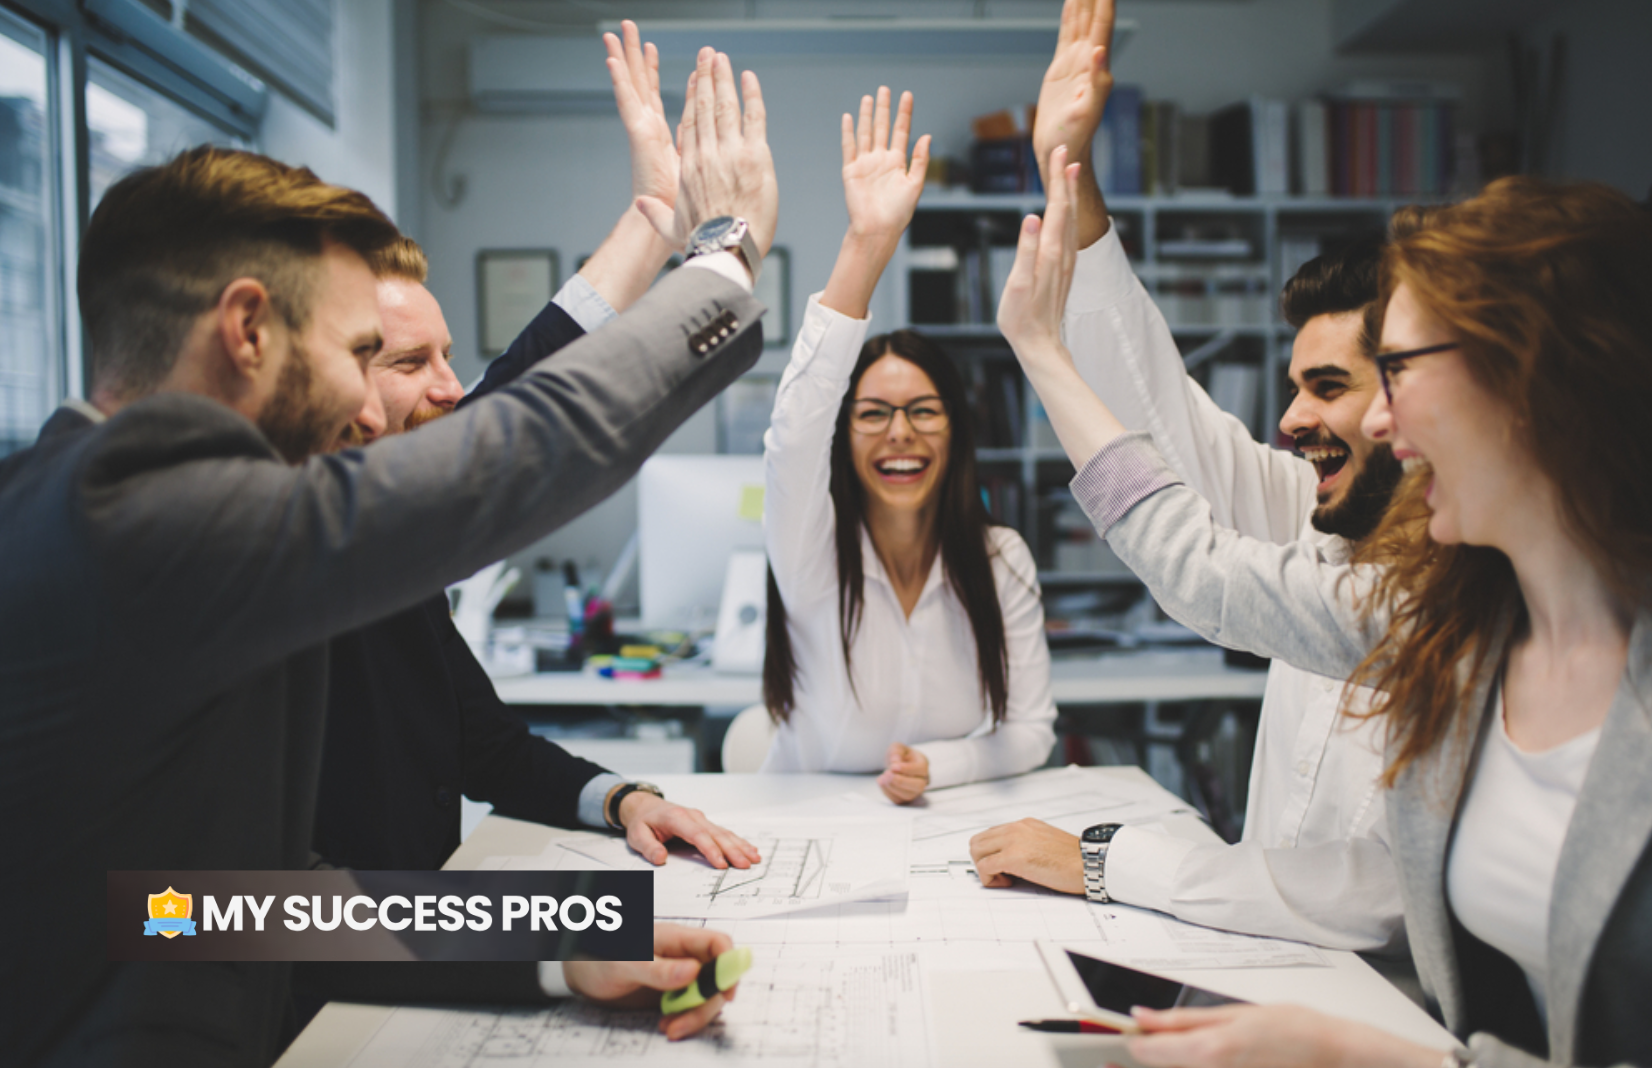 My Success Pros Shares Secrets To Successful Businesses